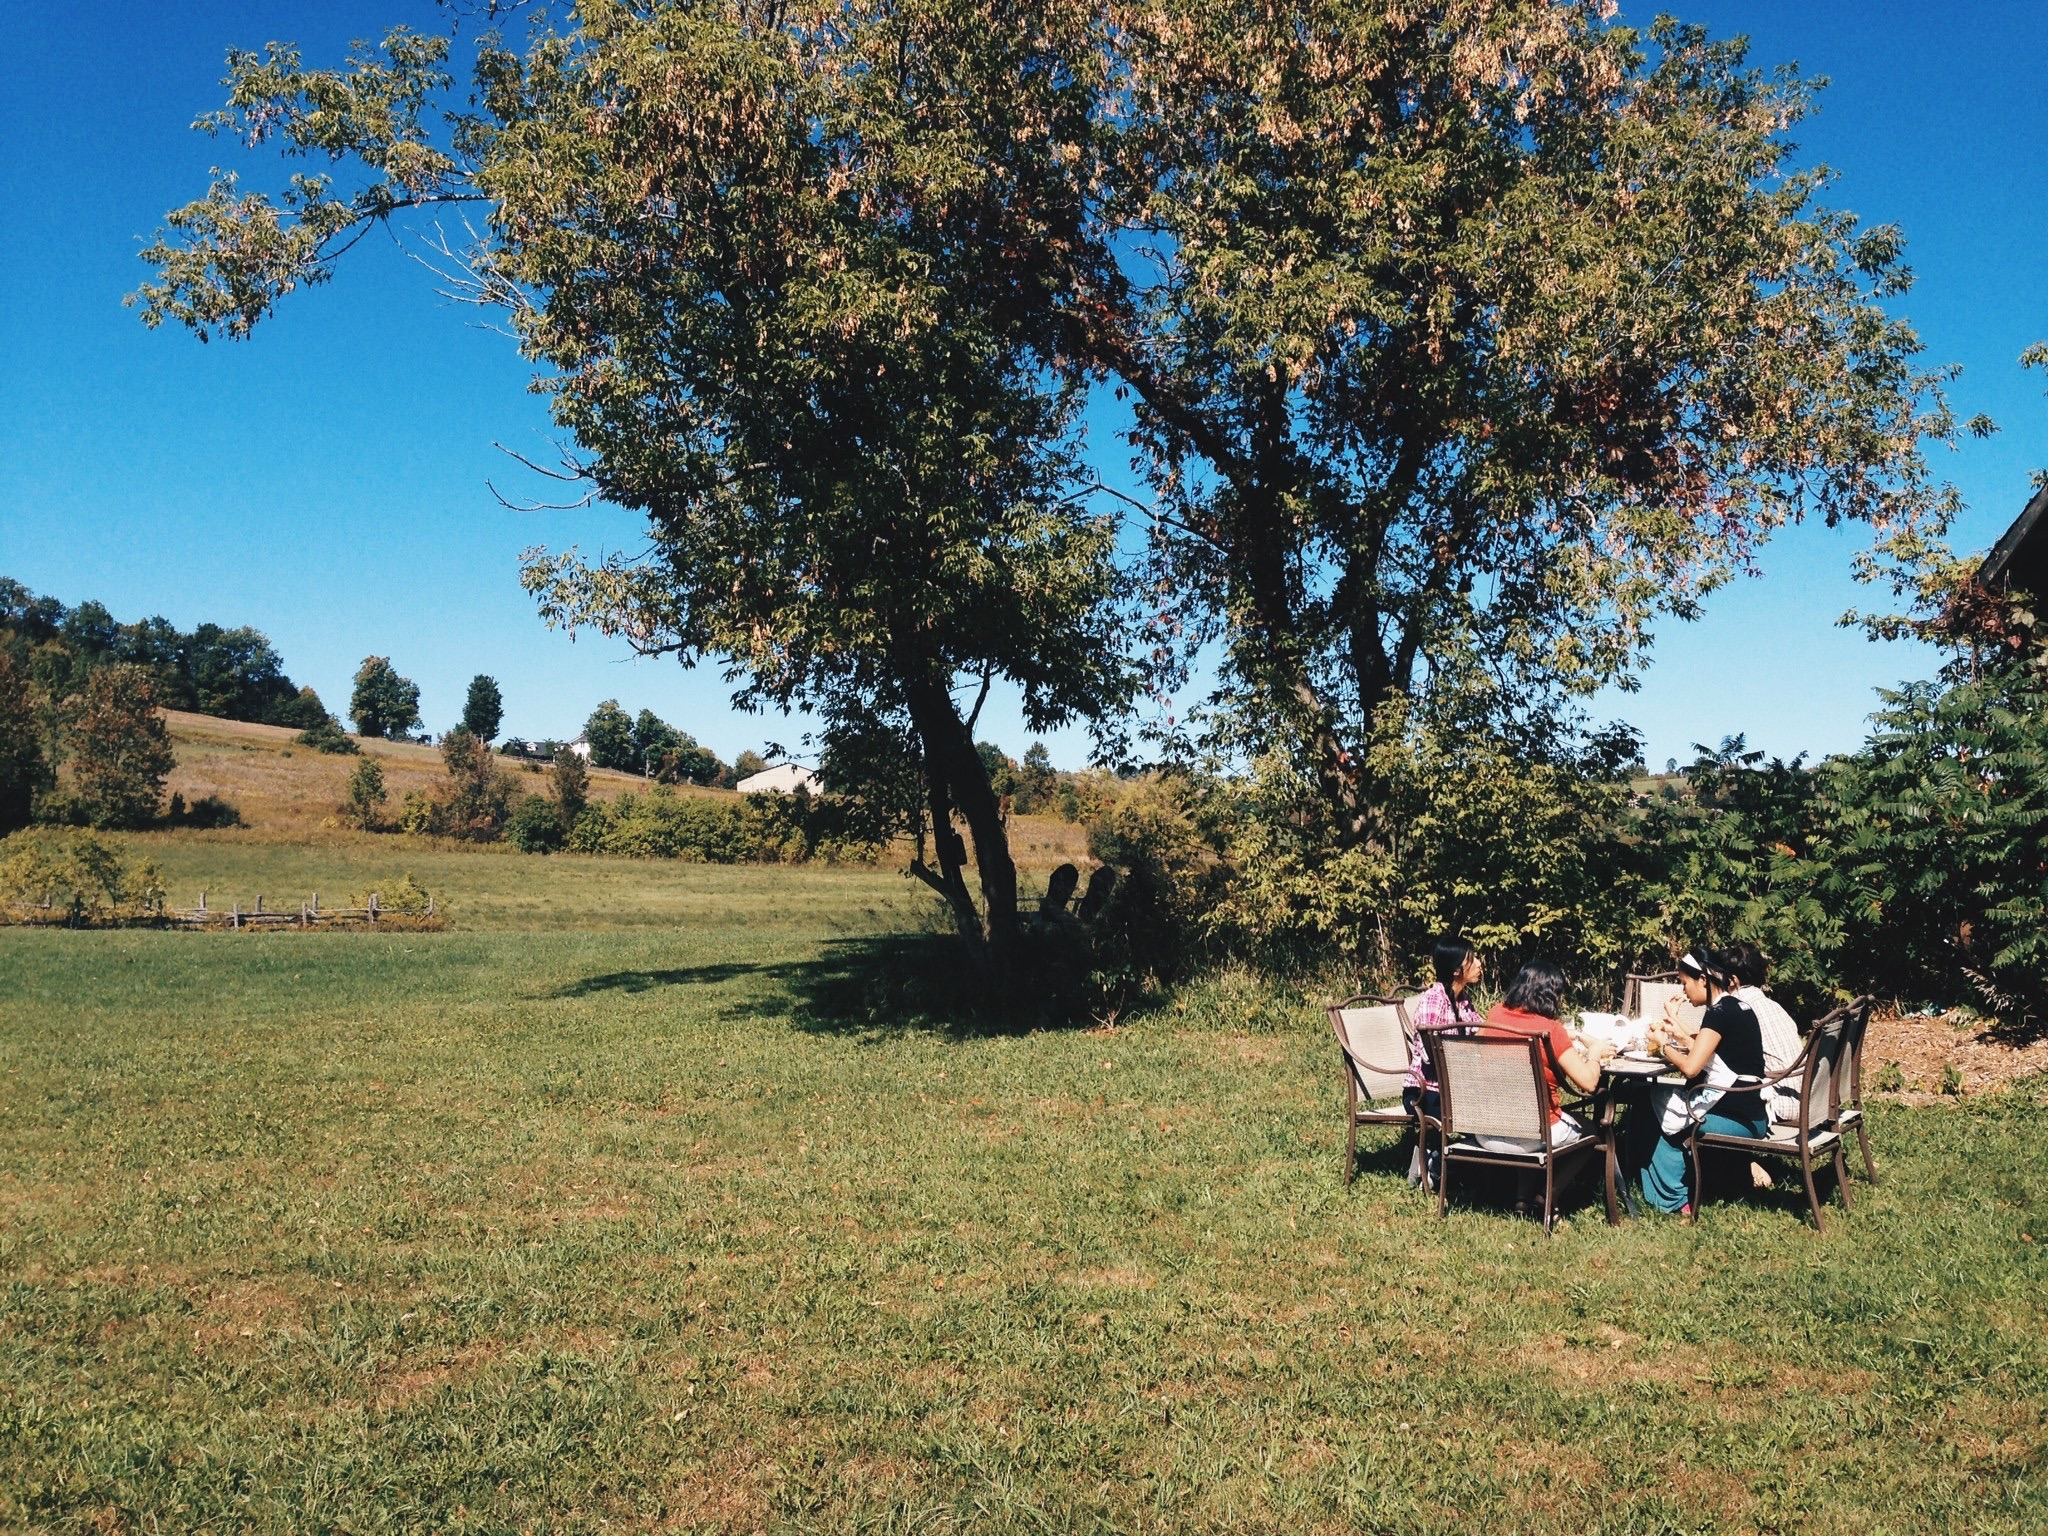 Lunch in an open field